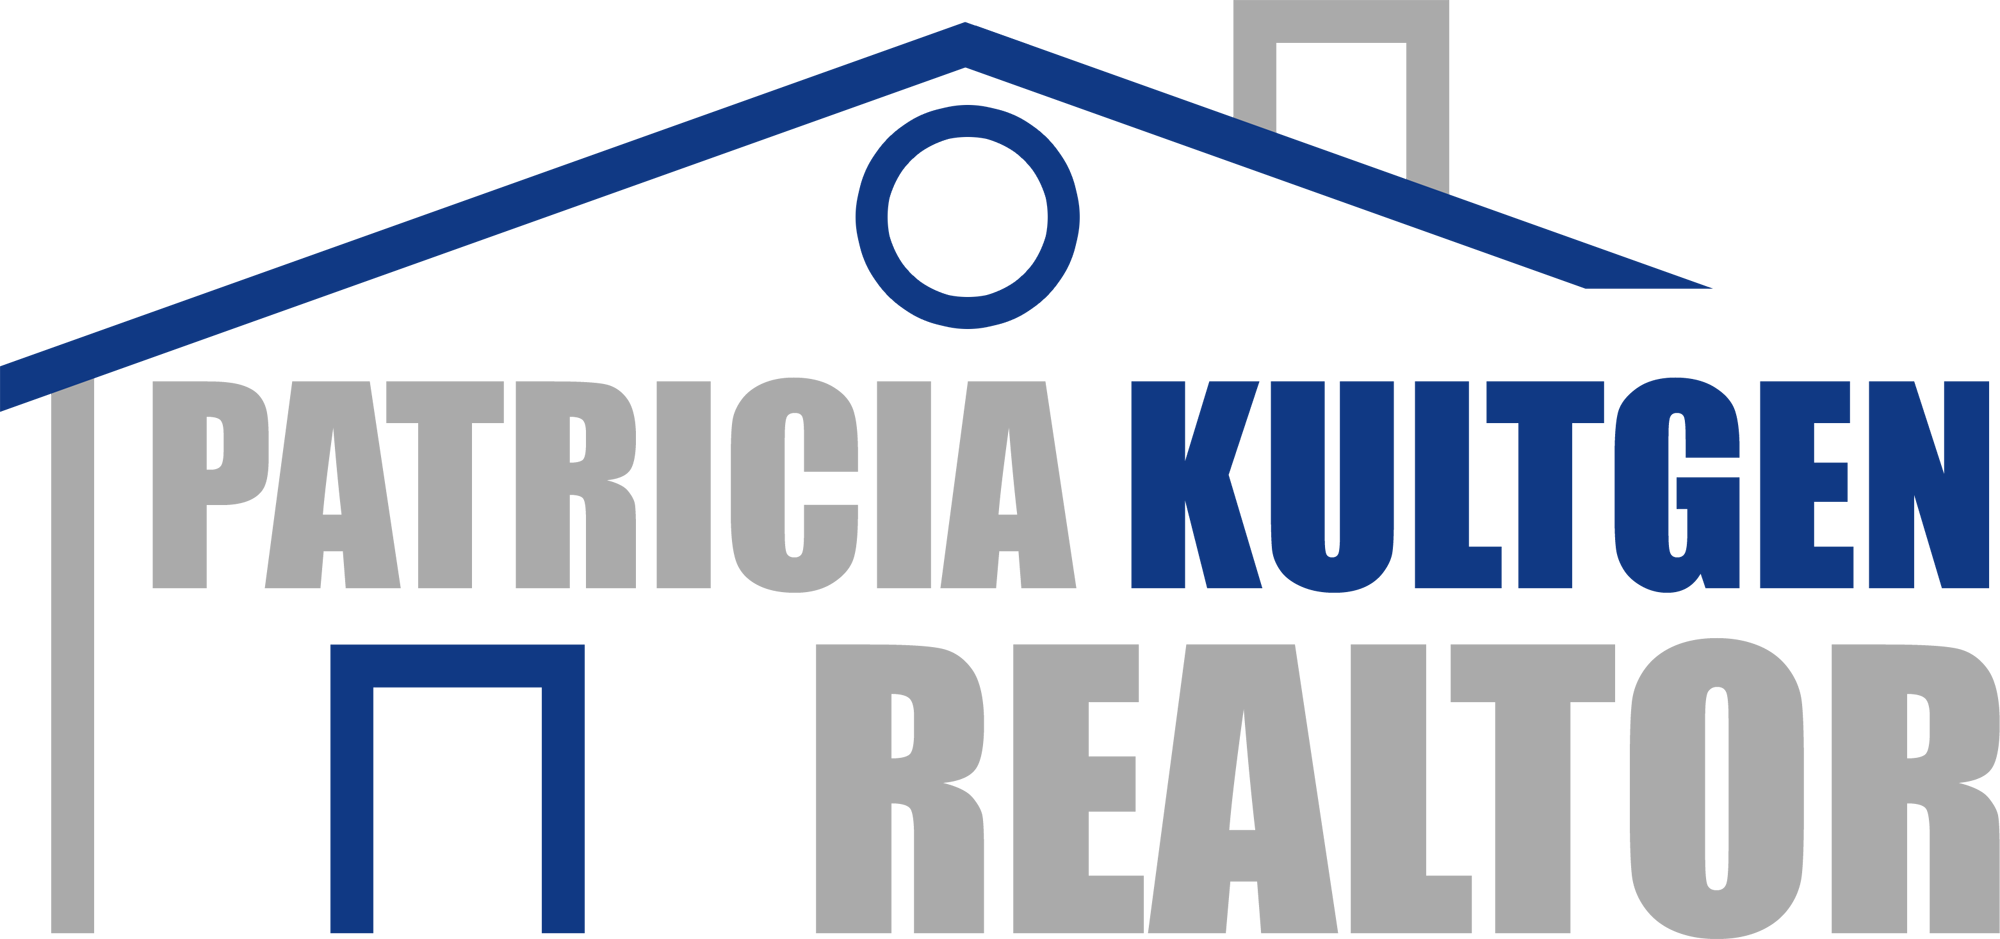 Logo Design by Jeff Gilmet - Entry No. 2 in the Logo Design Contest Logo Design Needed for Exciting New Company Patricia Kultgen Realtor.